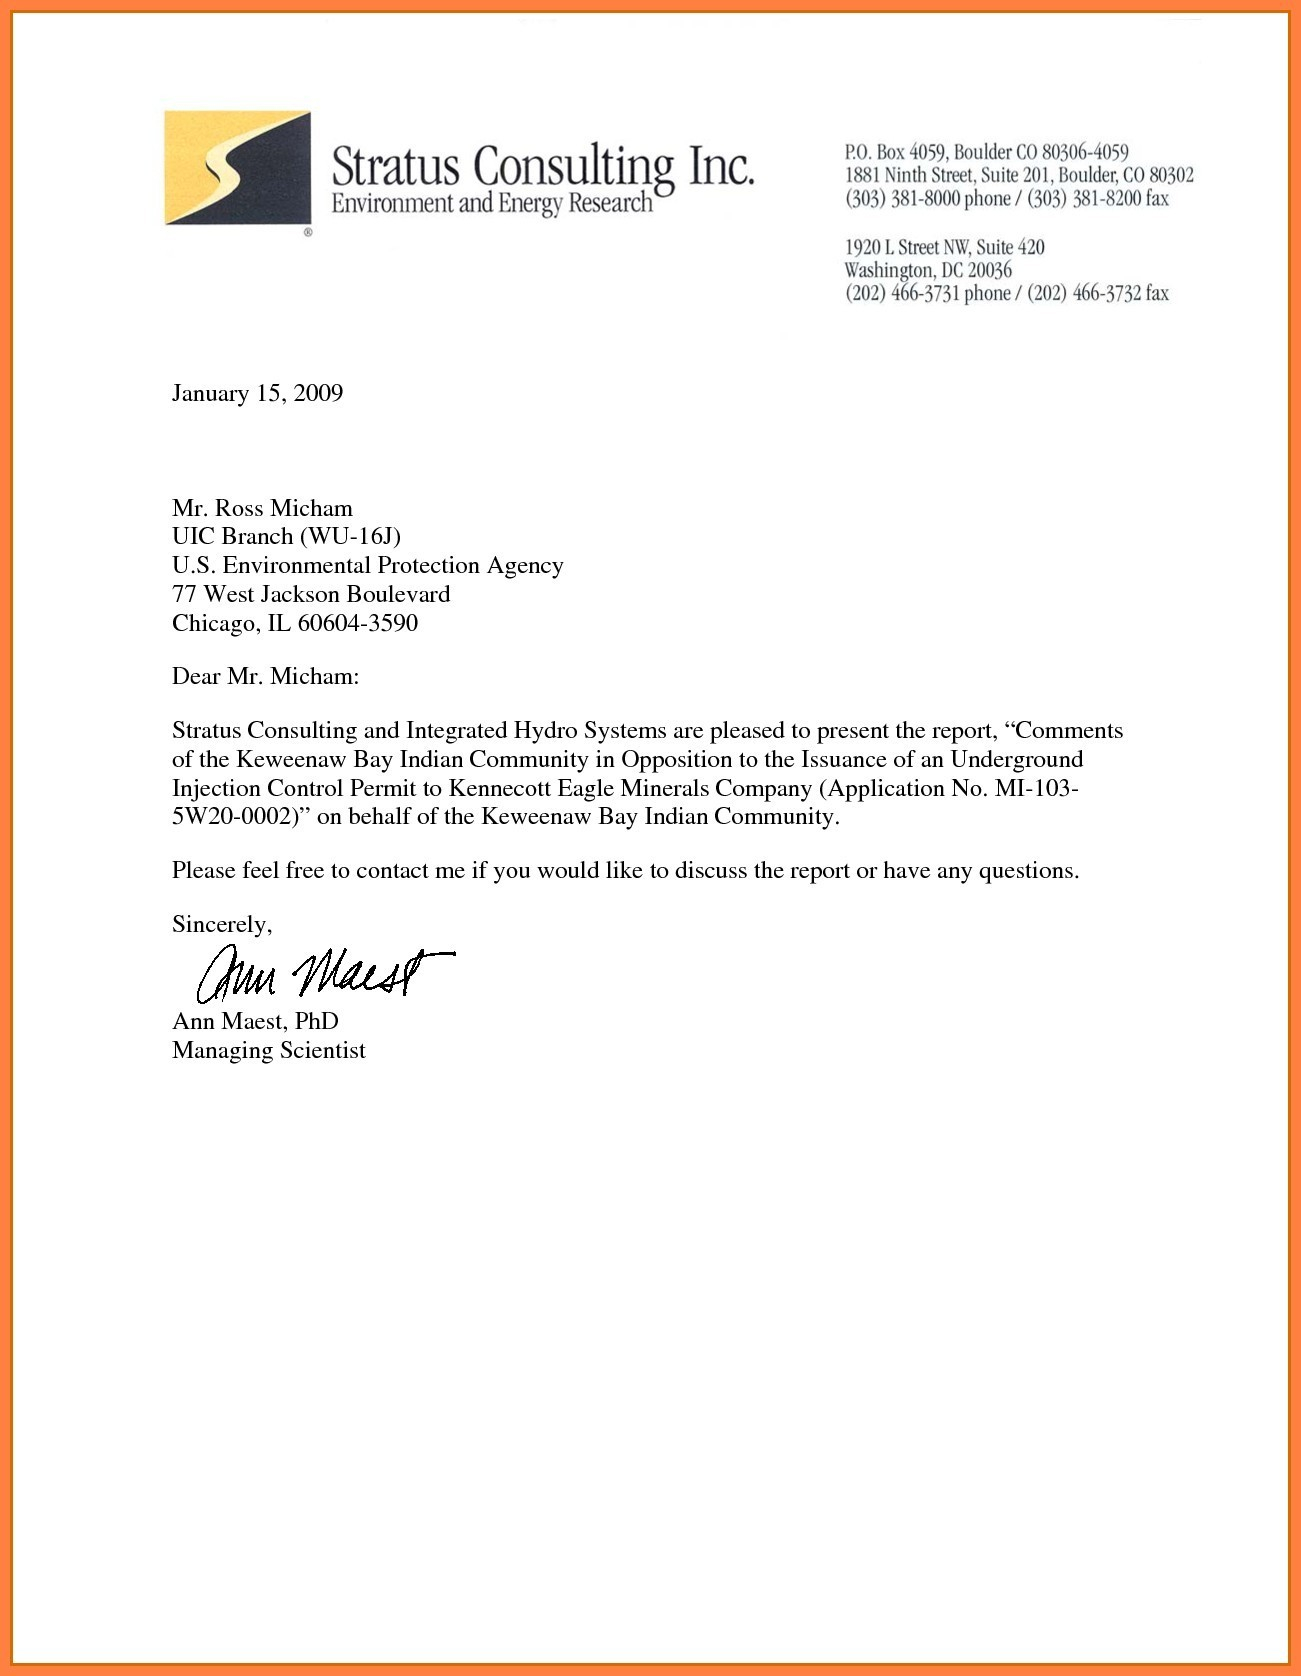 professional letter heading template Collection-Professional Letterhead Template Word Copy 15-b